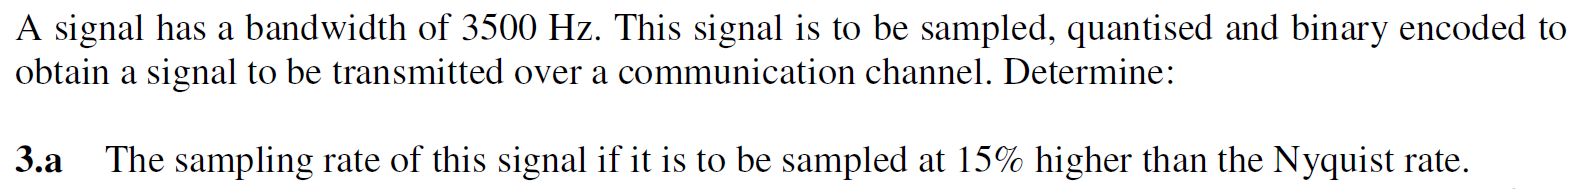 A signal has a bandwidth of 3500 Hz. This signal i